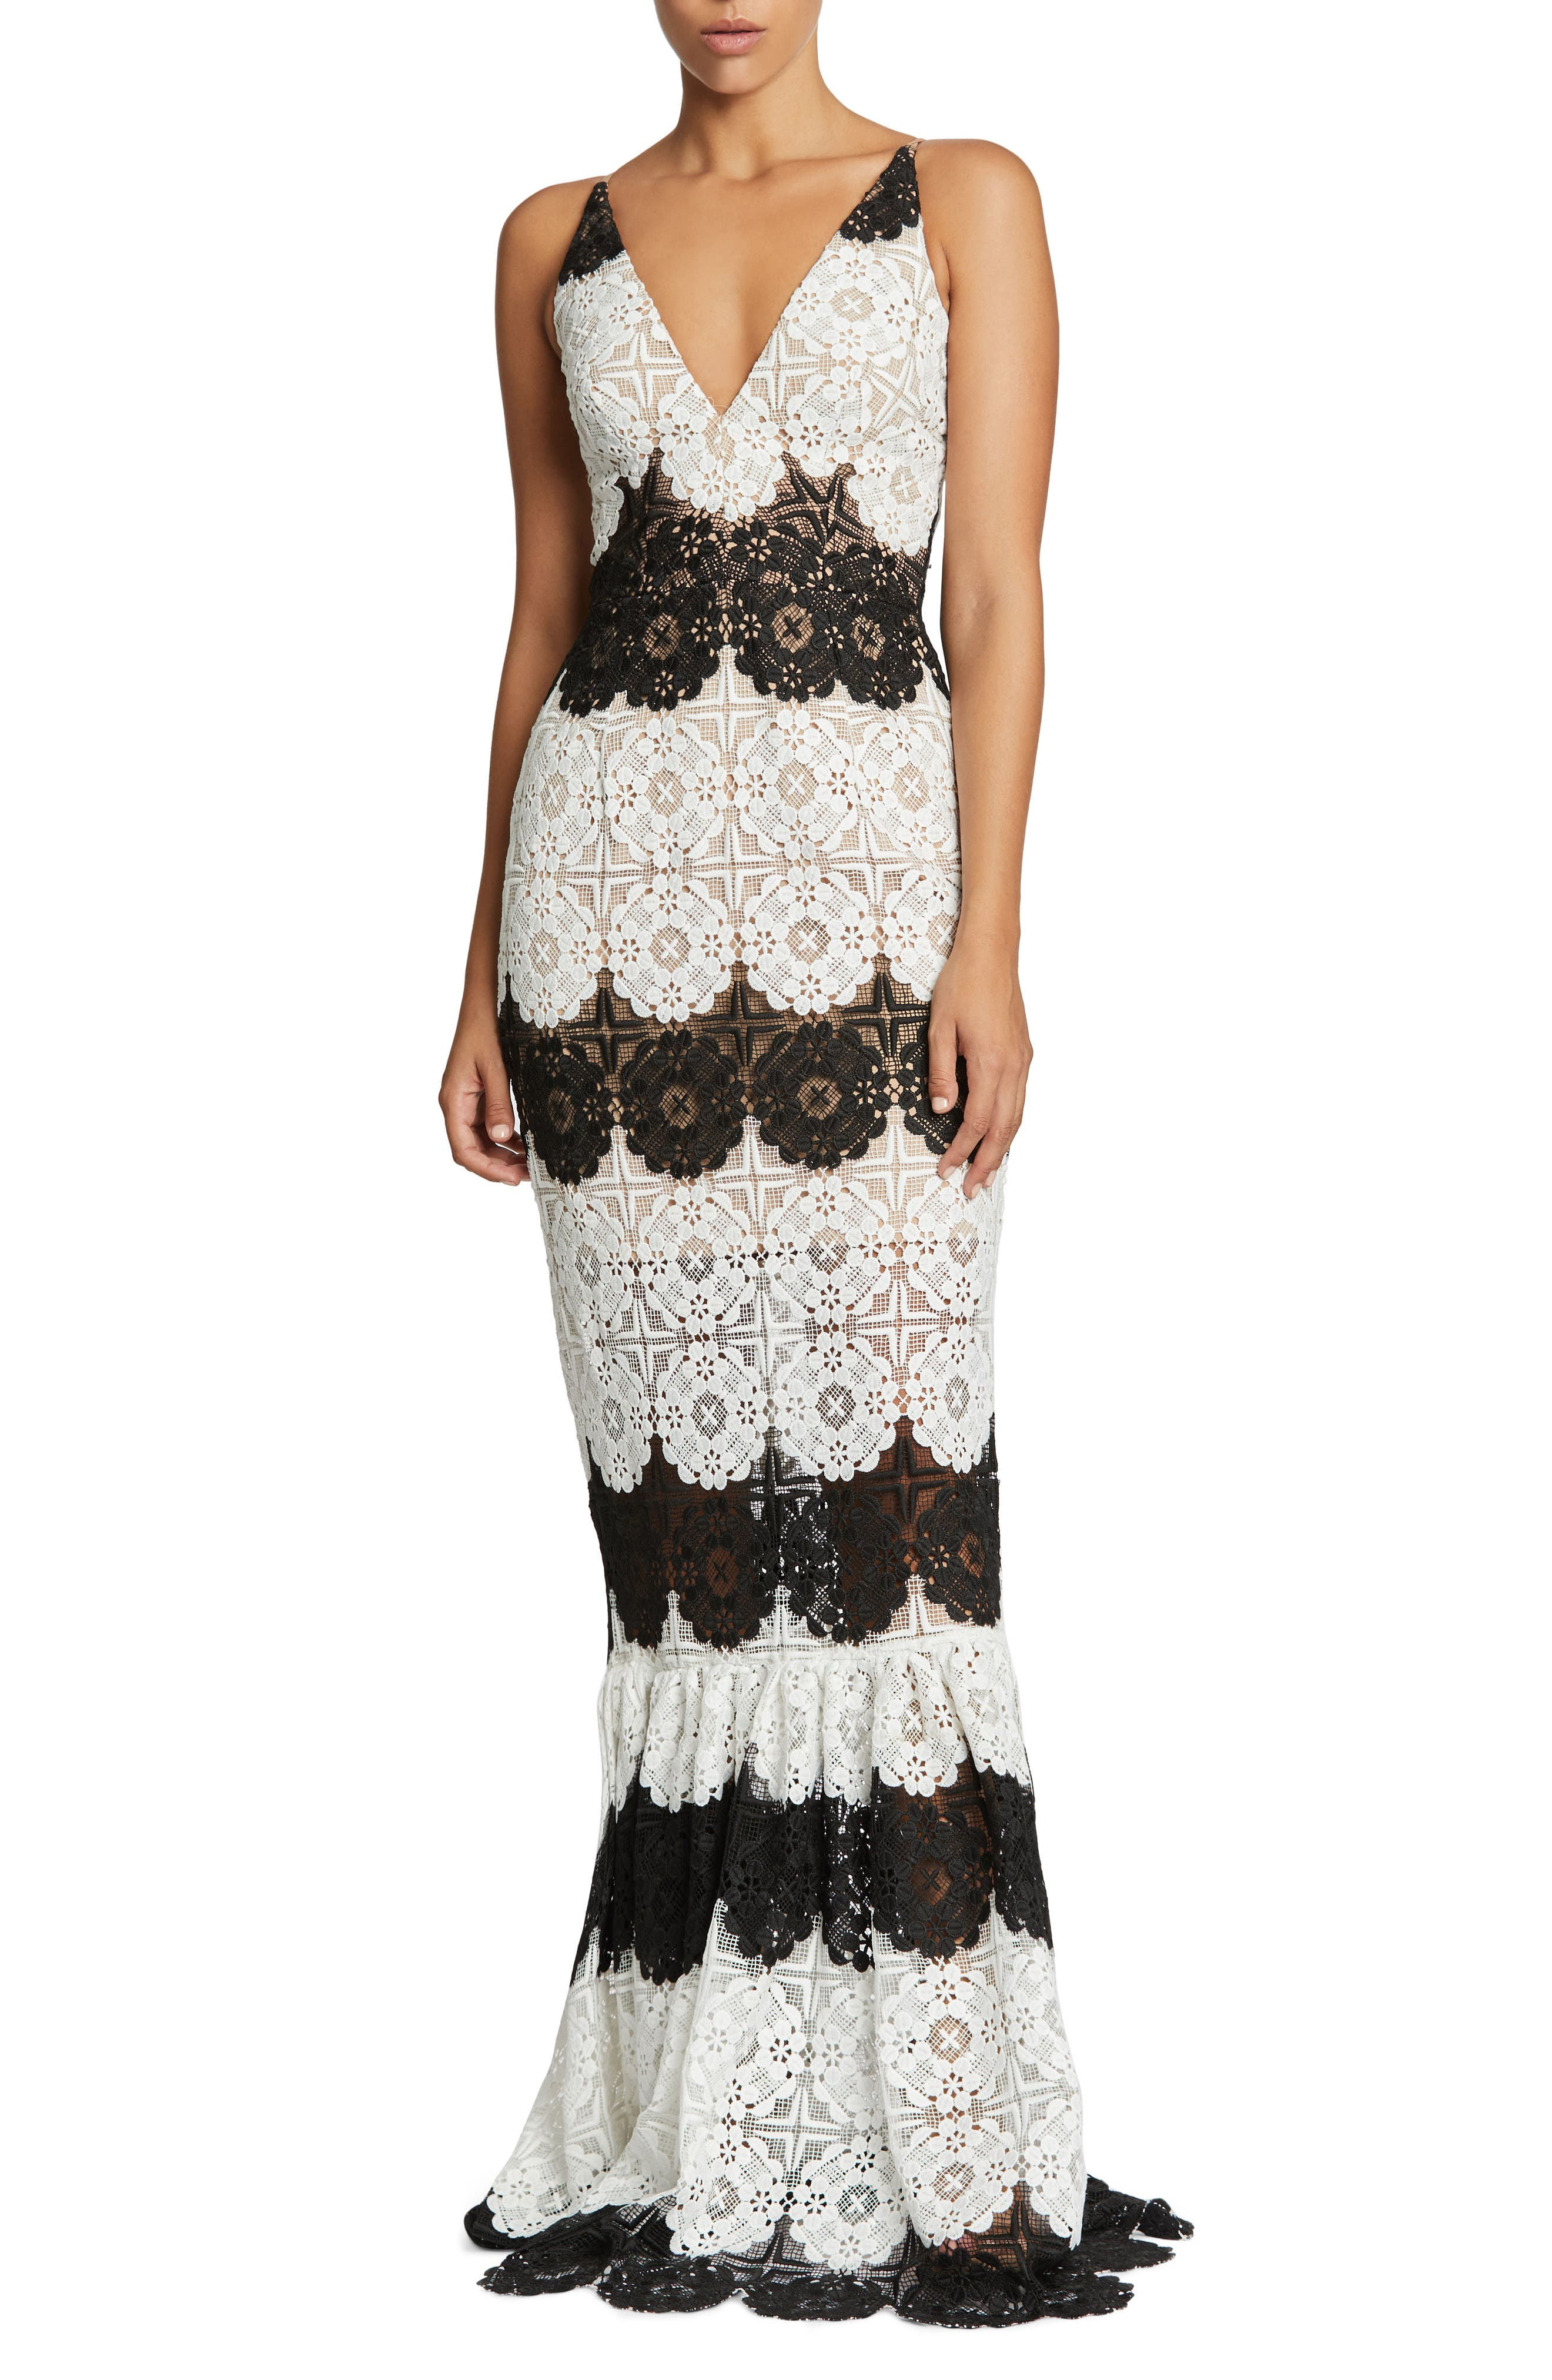 Candace Crochet Mermaid Gown,                             Main thumbnail 1, color,                             White/ Black